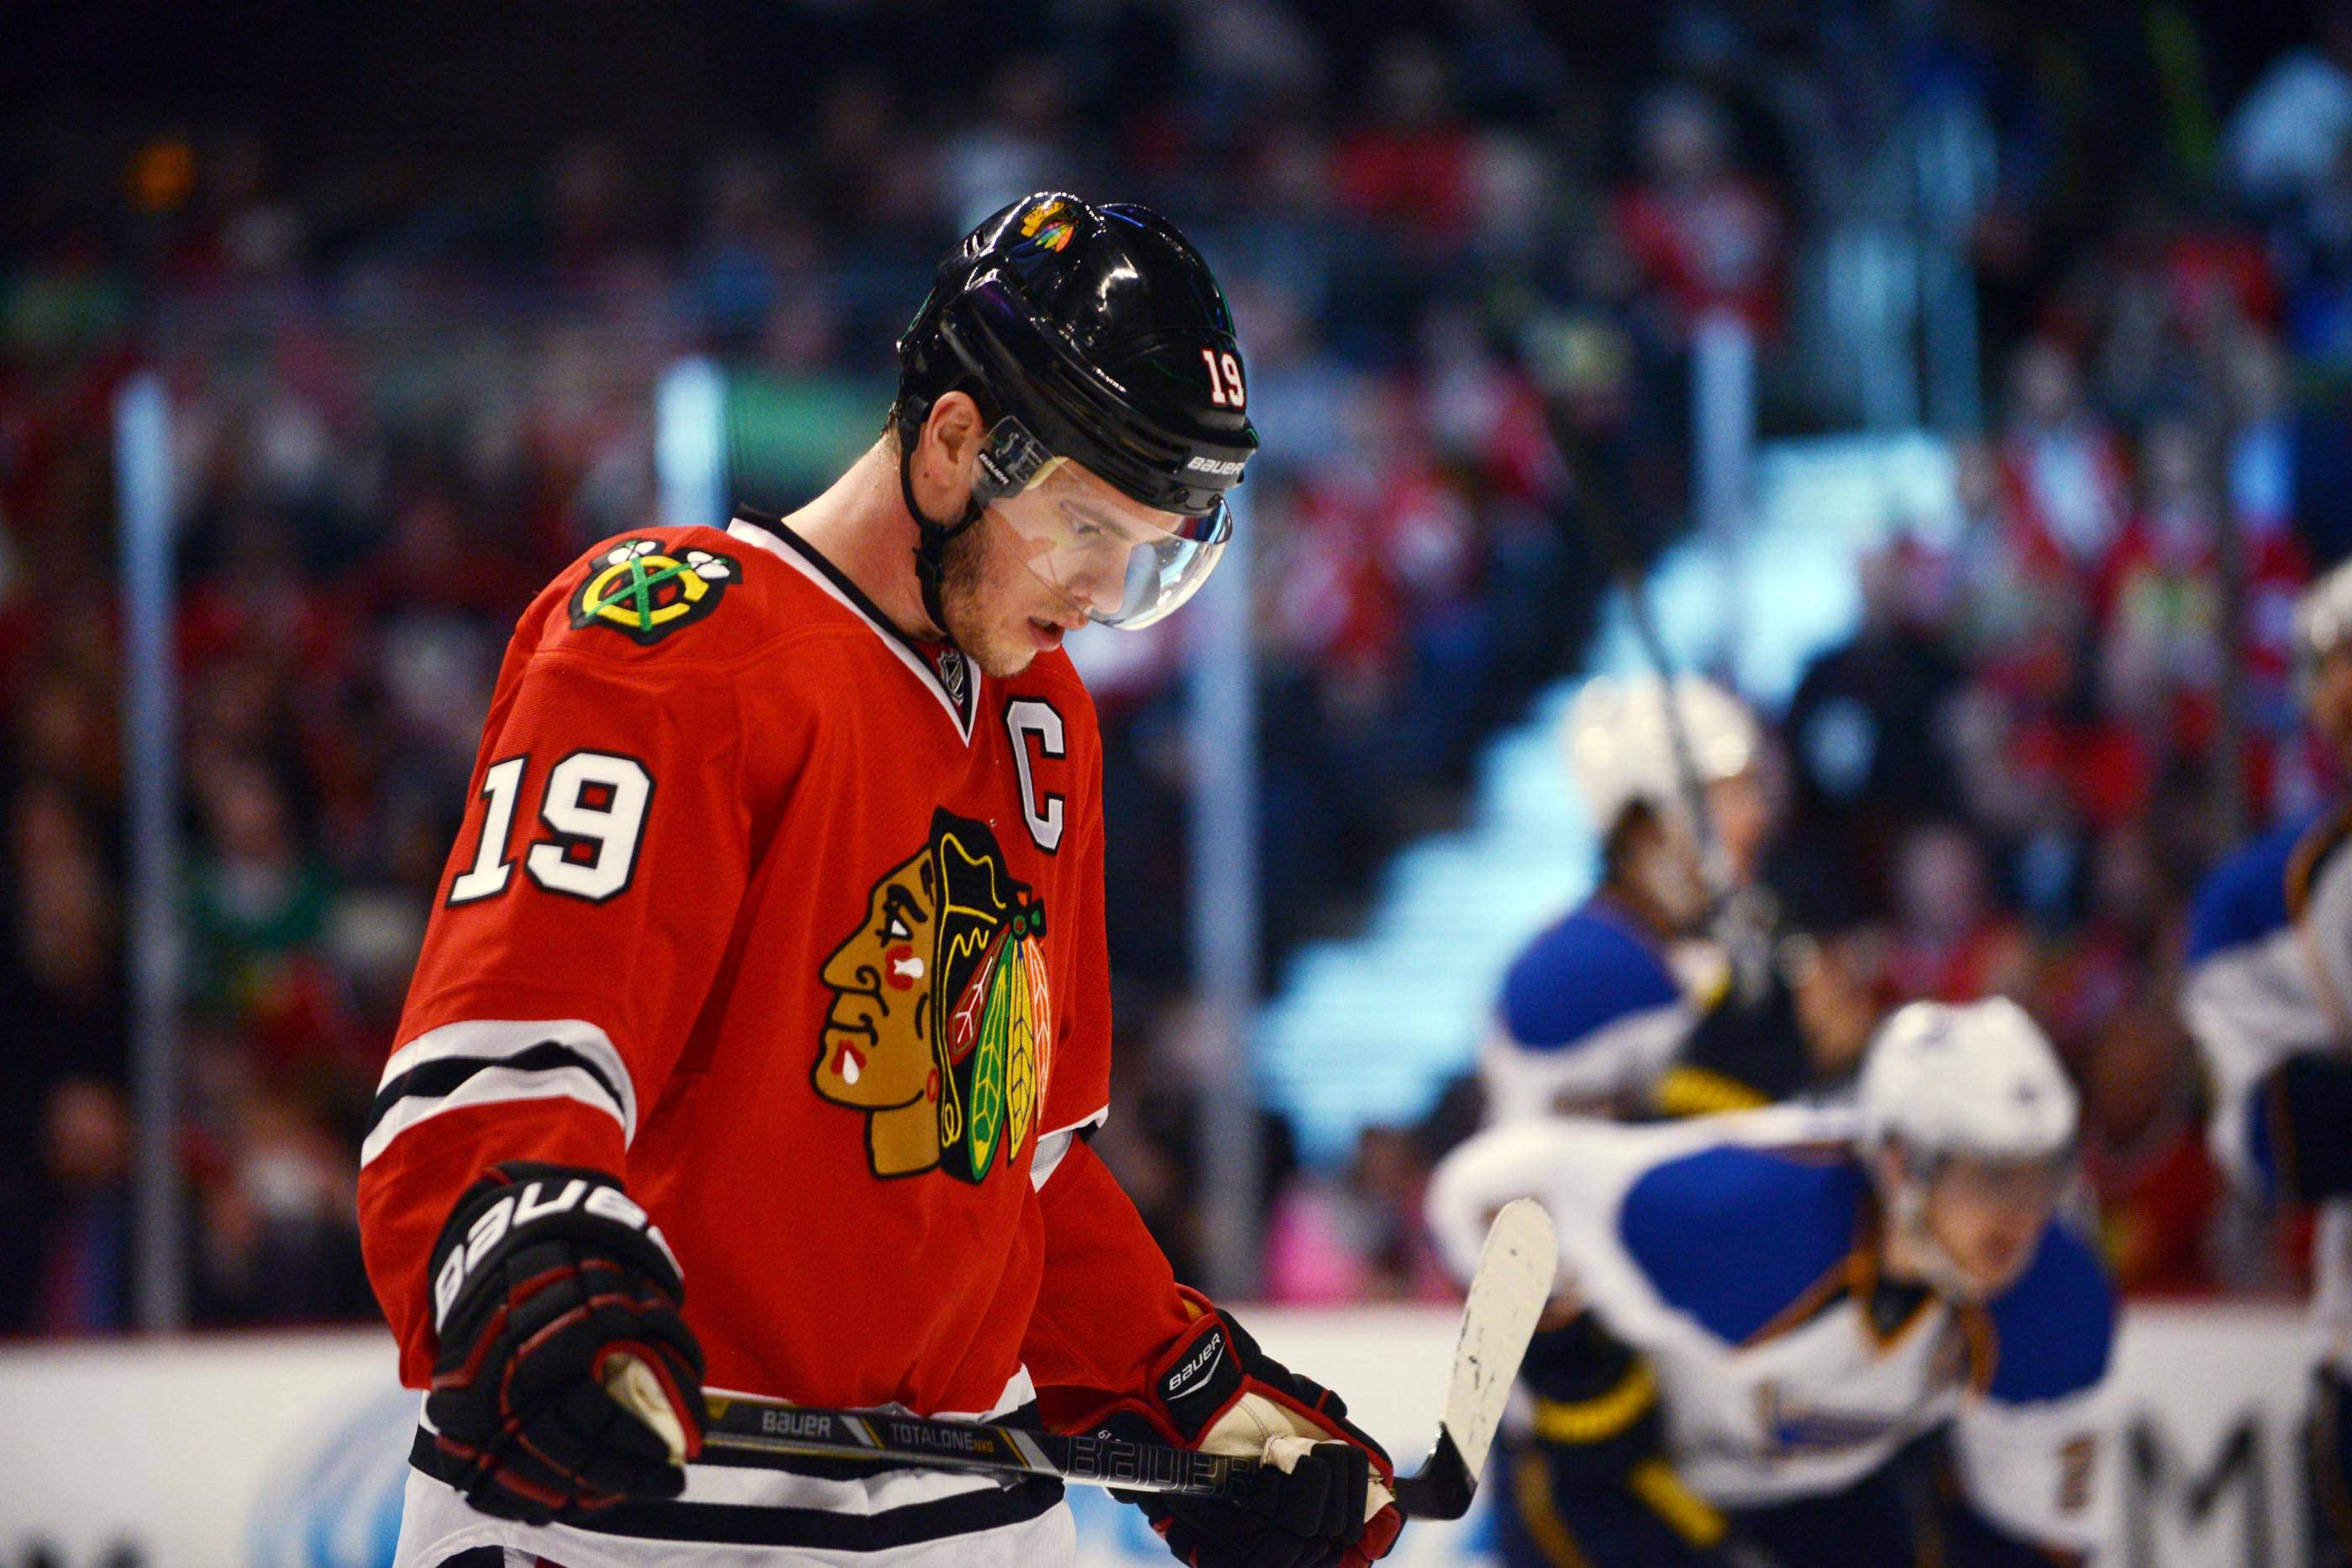 Chicago Blackhawks center Jonathan Toews reacts during a time out in the first period.